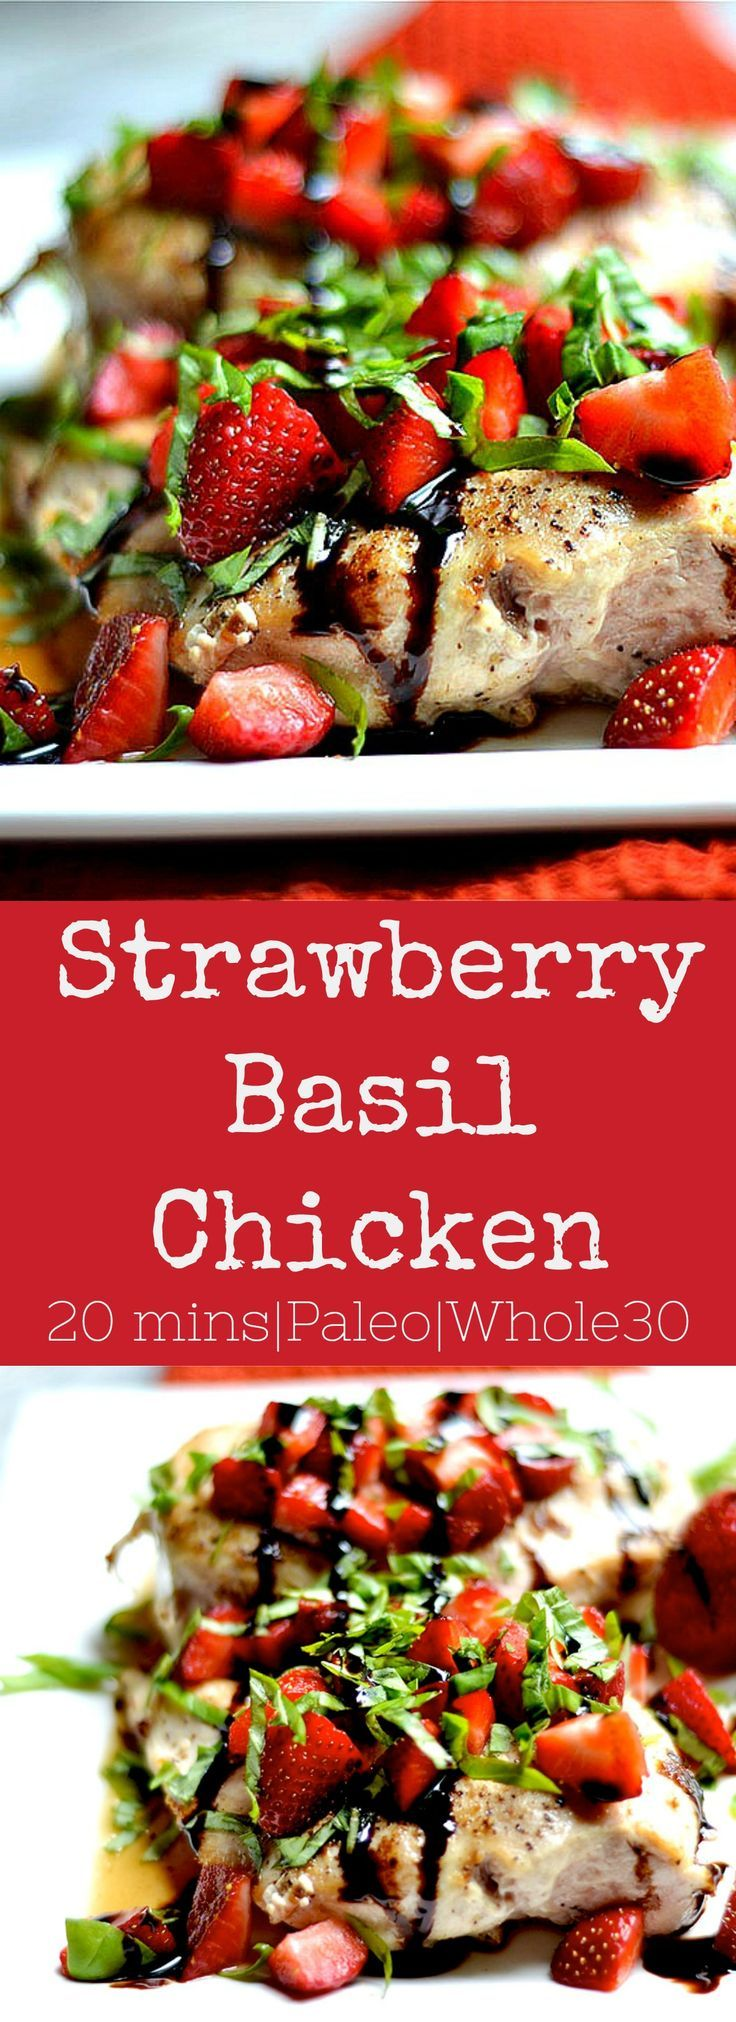 Strawberry Basil Chicken is the easiest recipe with such delicious flavor! Kid-friendly, and perfect for busy weeknights.